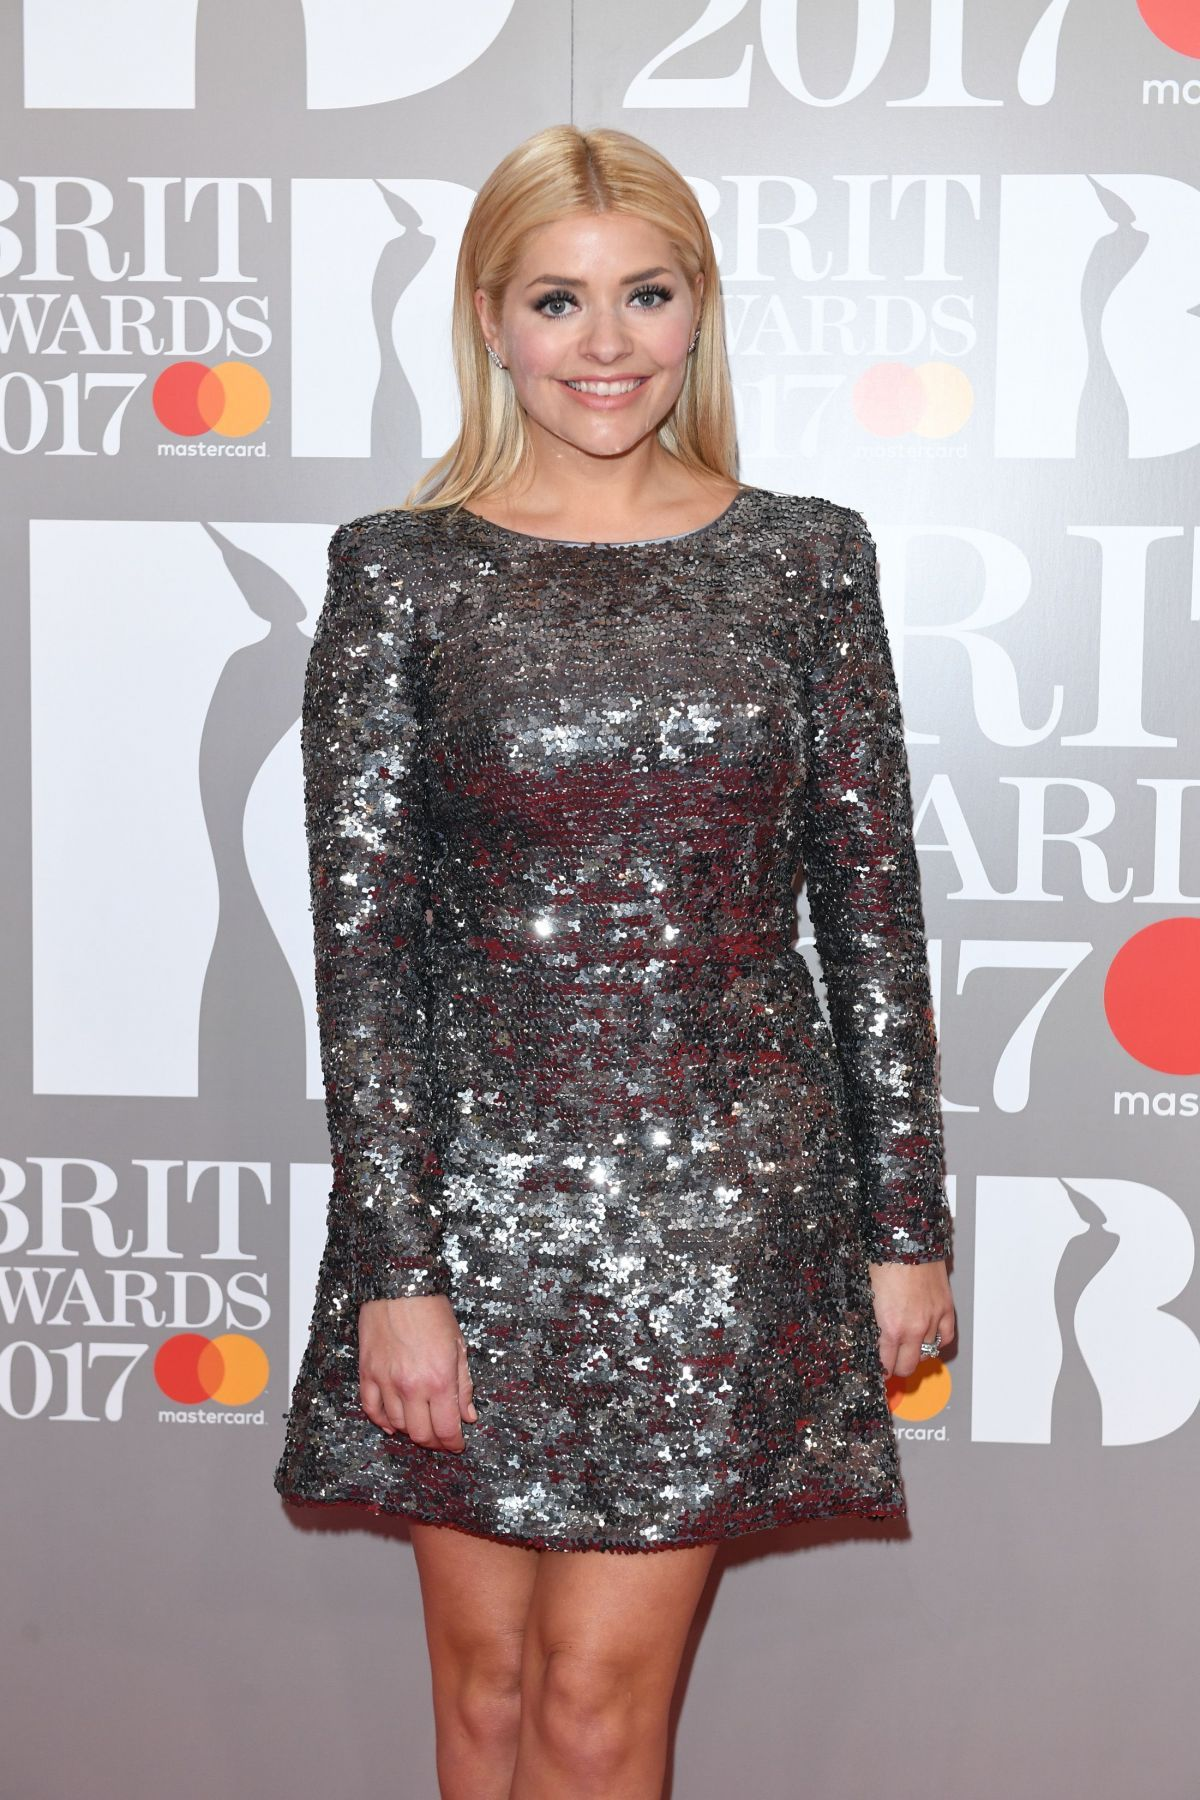 9f0d593e Holly Willoughby | Brit Awards 2017 | Silver Sequin Dress by Suzanne Neville